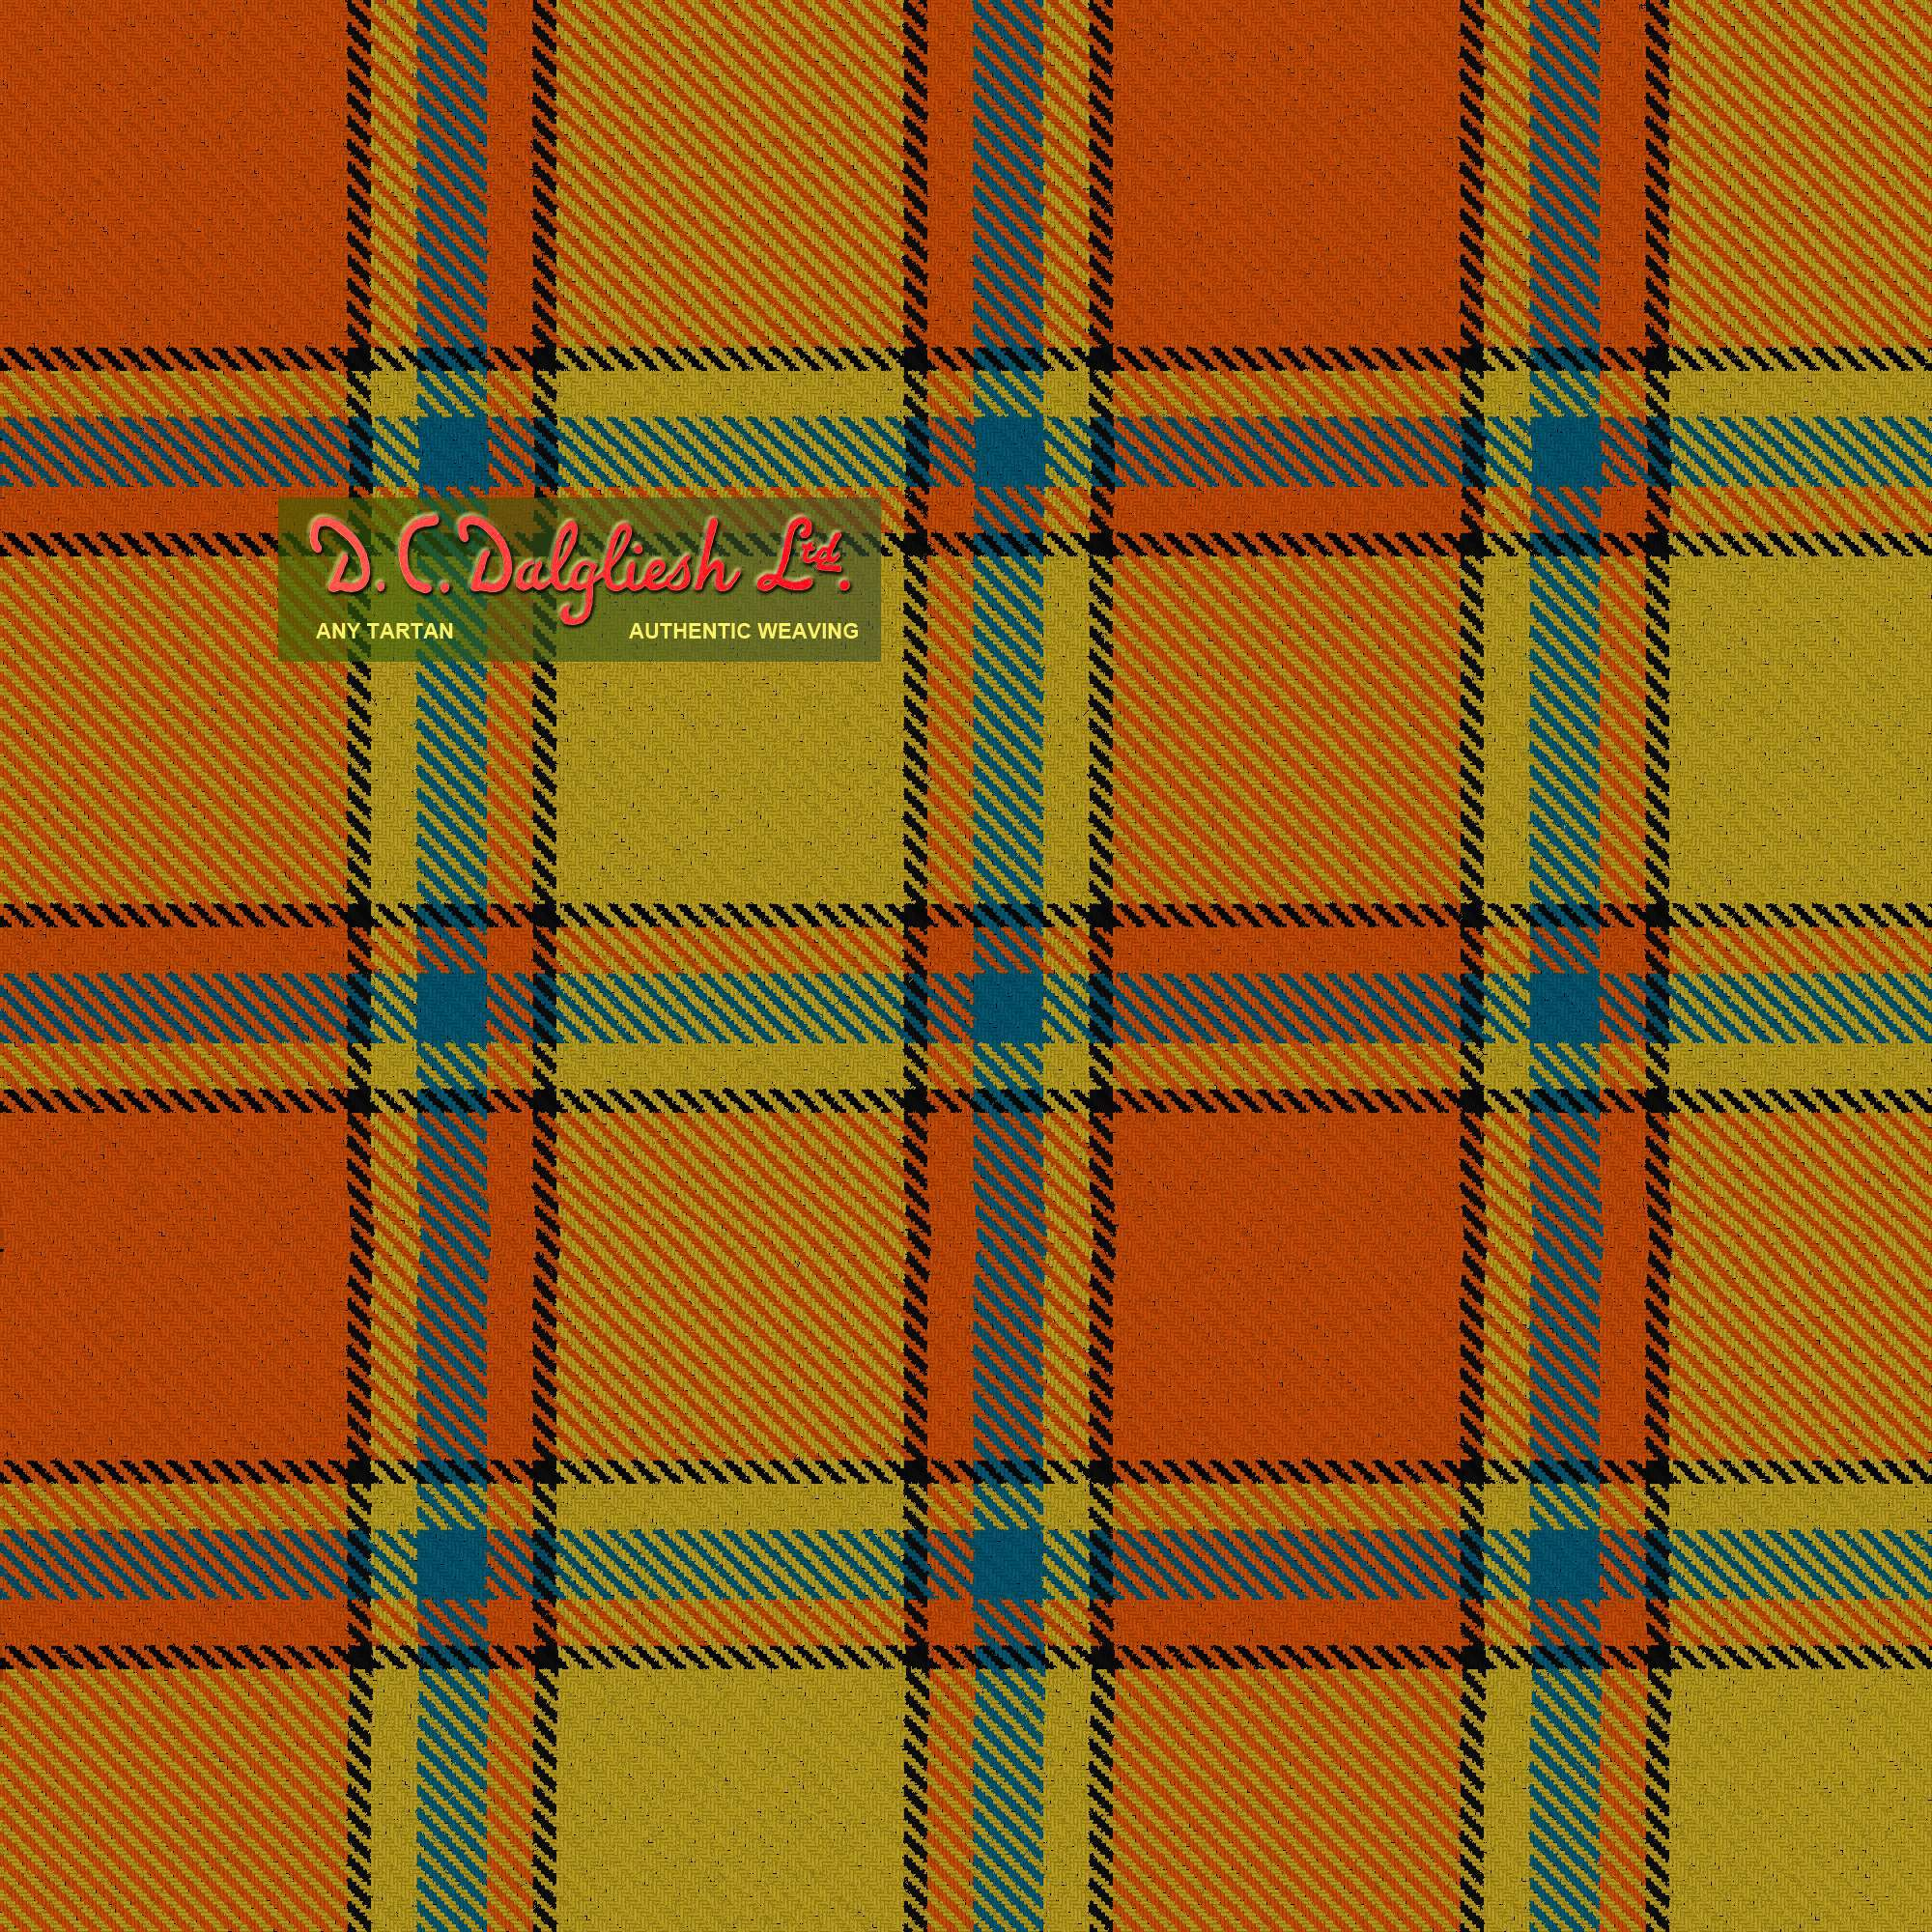 Scrymgeour Fabric By Dc Dalgliesh Hand Crafted Tartans